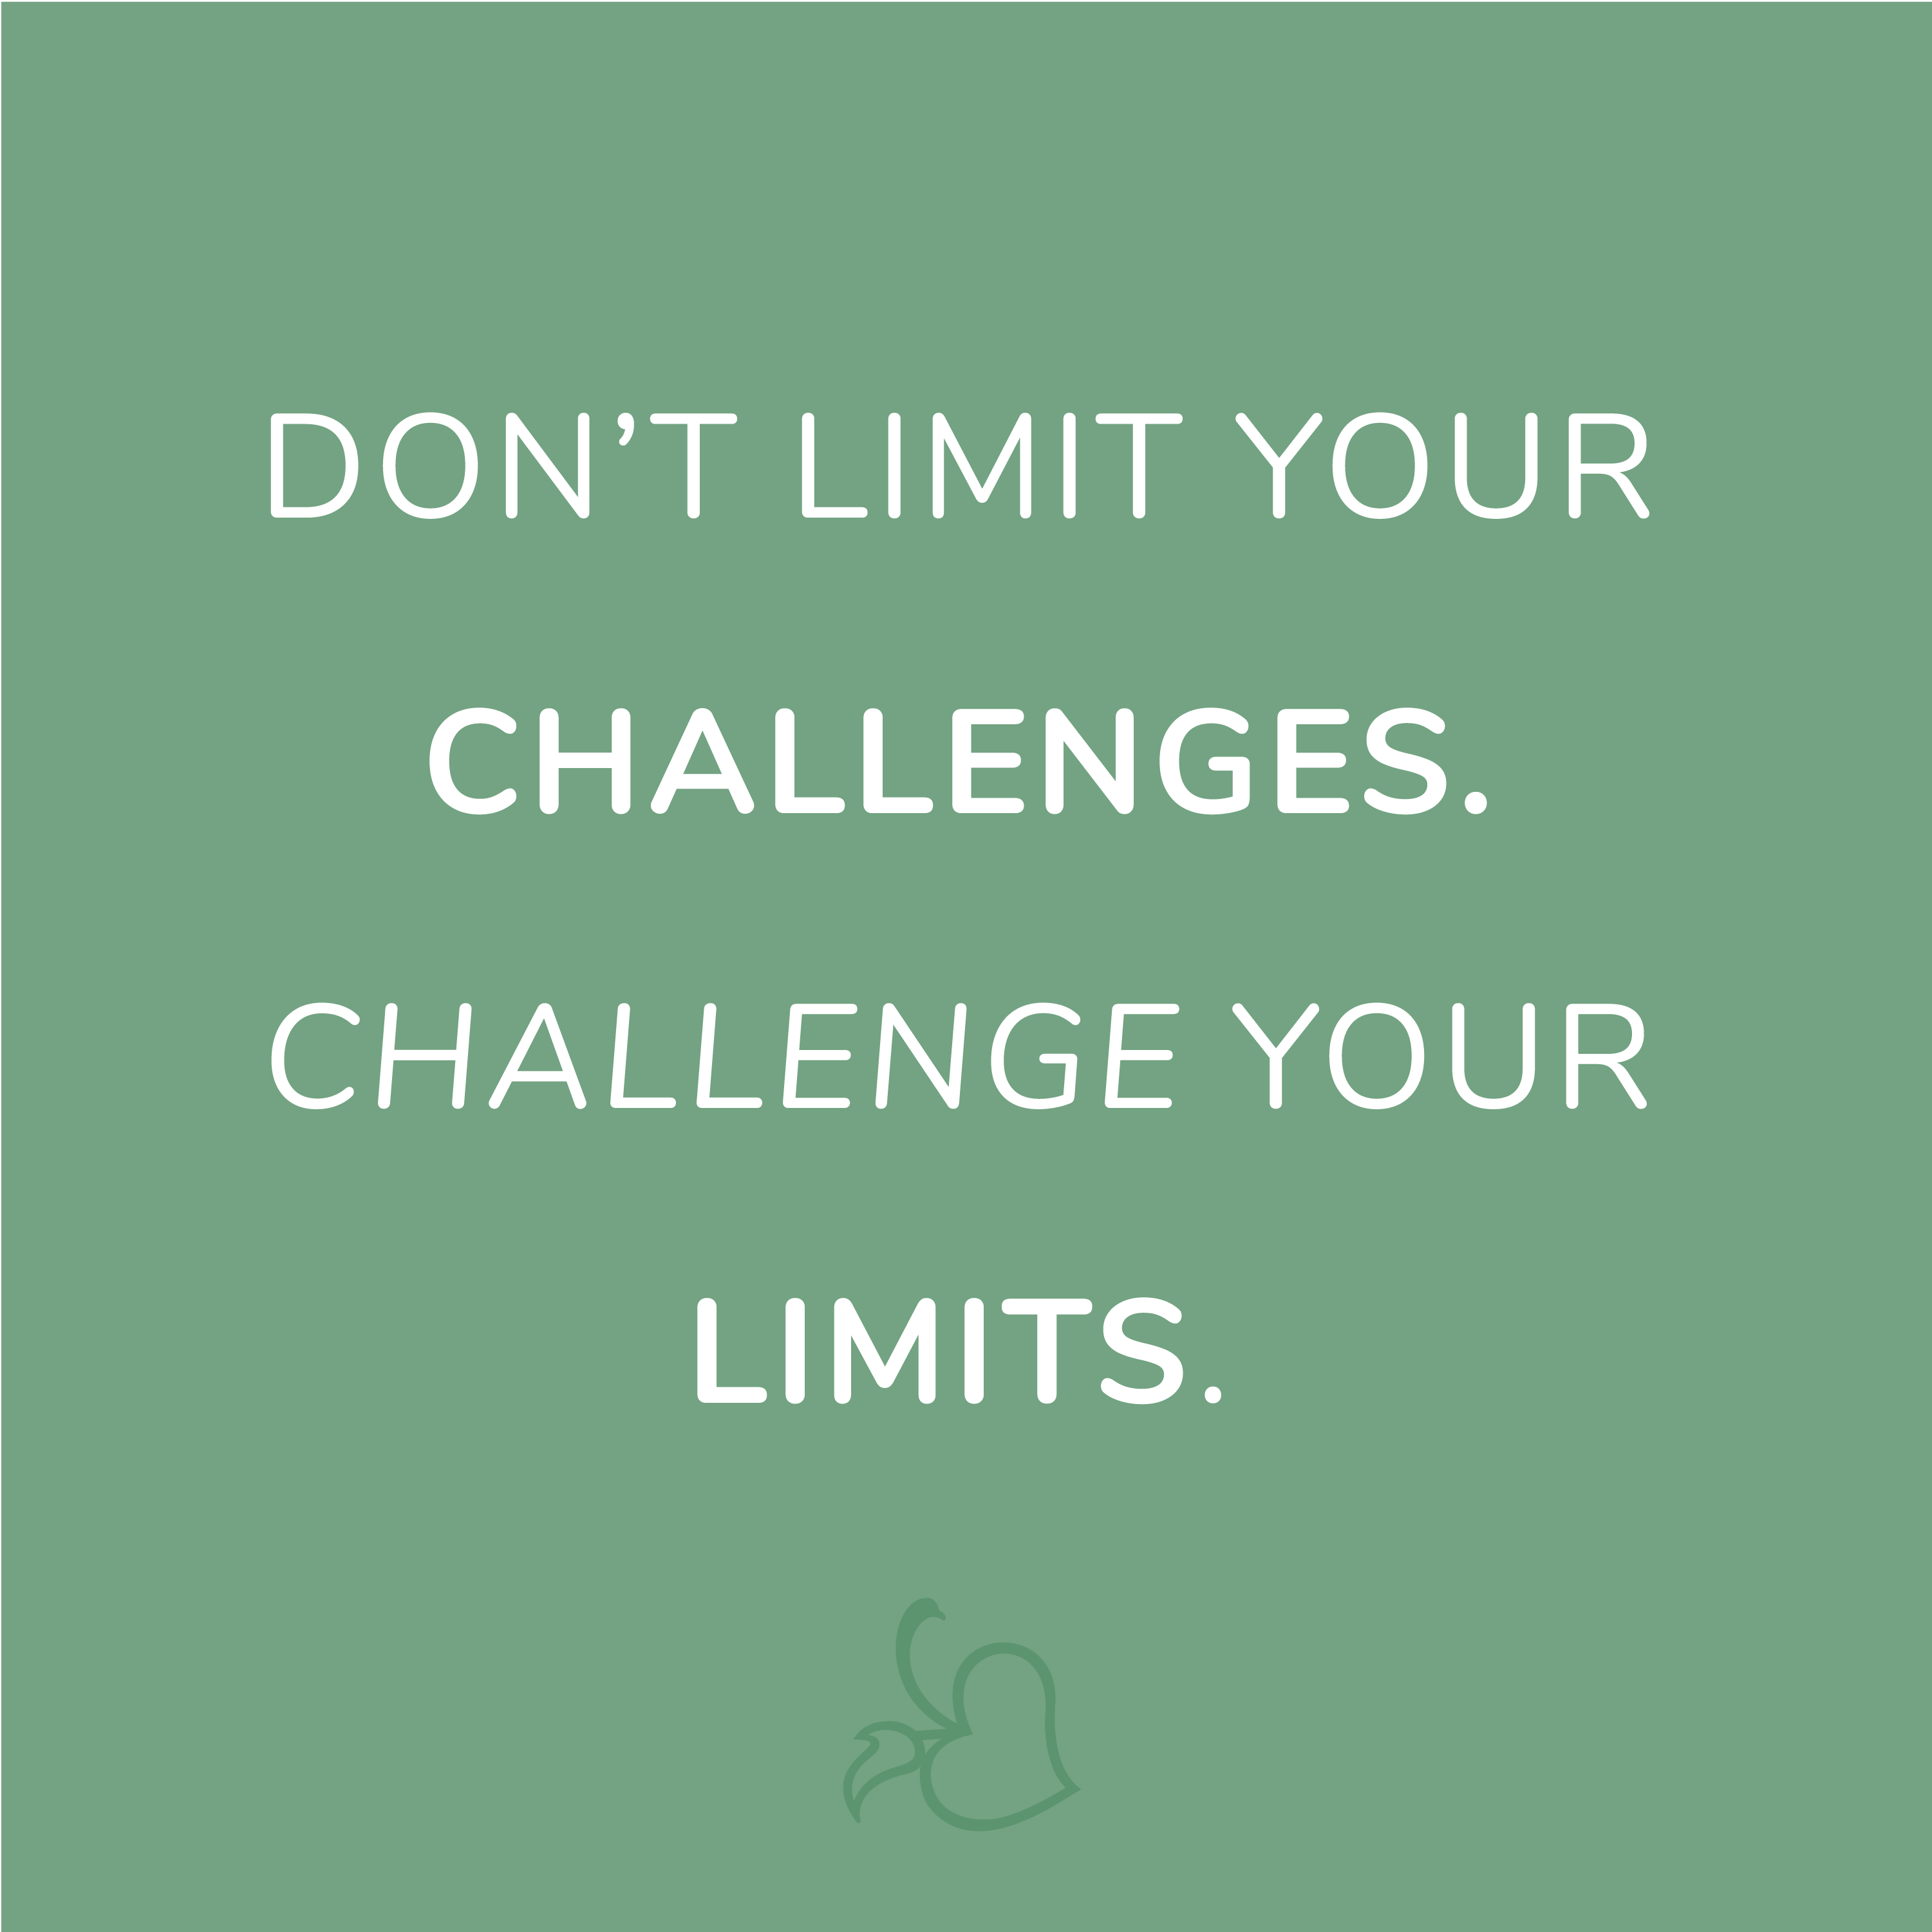 Life Can Come With Many Hurdles With A Little Hardwork And Perseverance You Will Find That Light Inspirational Quotes Motivation Inspirational Quotes Quotes